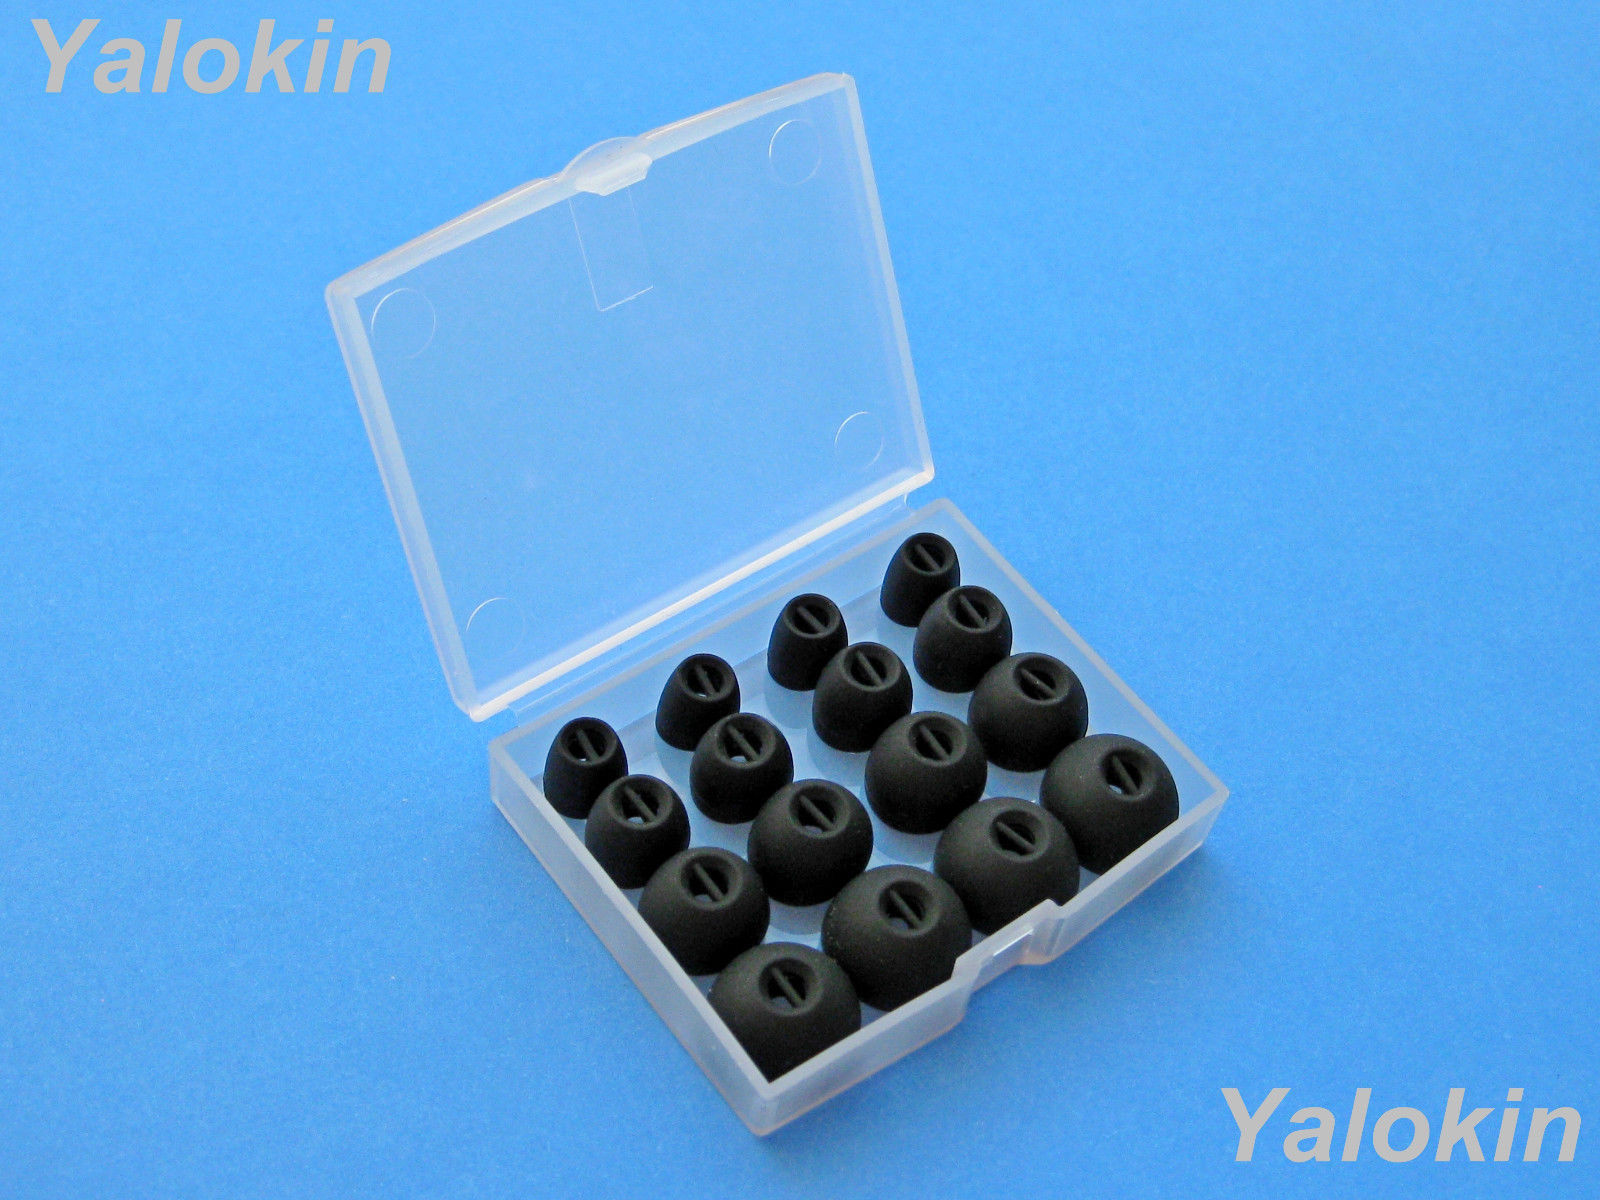 16pcs XS/S/M/L Comfort Eartips buds for Sennheiser CX 3.00 and CX 5.00 (B-NSEN)